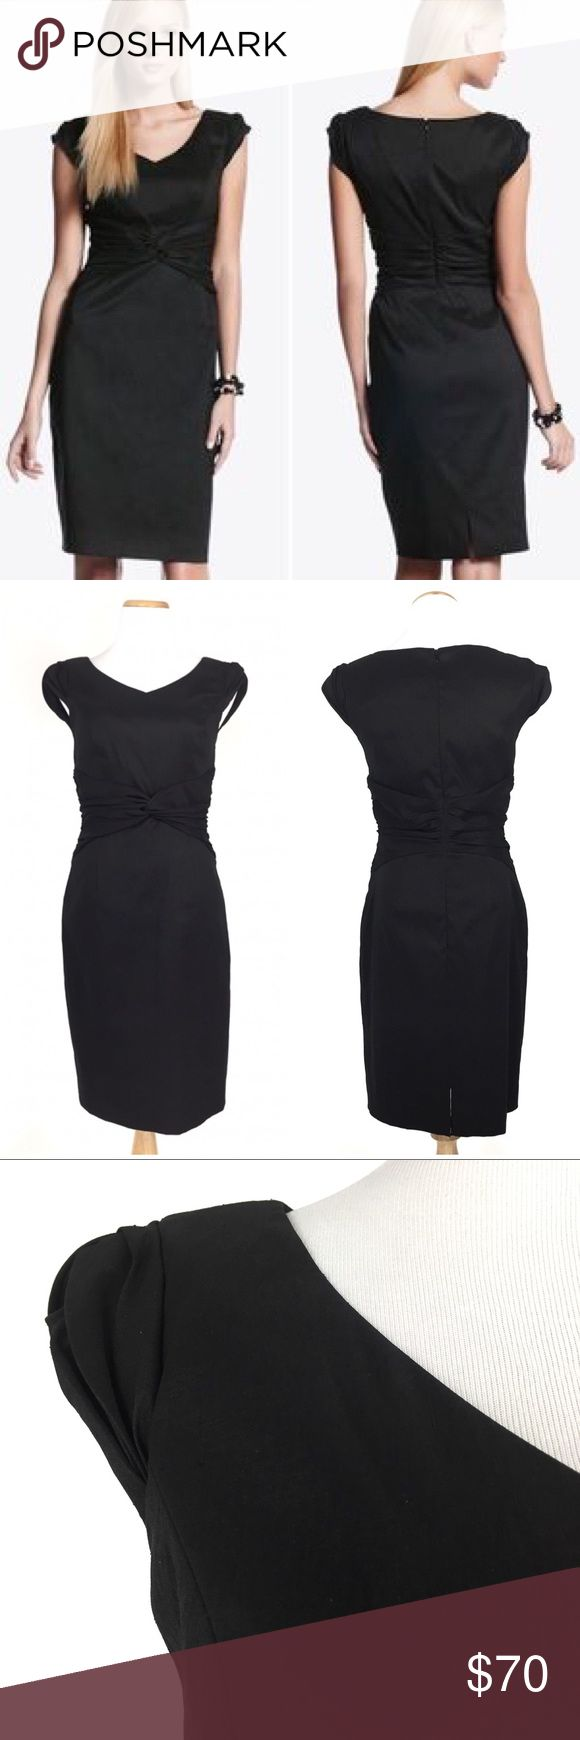 """NWT WHBM Size 4 Knotted Sheath Dress Black Black dupioni sheath dress designed with a V-neck and a gentle twist at the cap sleeves. Crisp dupioni fabric with a slubbed texture, subdued luster and gentle rustle. Back zipper. 4"""" slit. Fully lined.  This dress is currently sold out on white house black market website. Retail $168 New with tag. Great shape and in excellent condition. No rip, no stain and no holes.  Material:59% Polyester, 36% Nylon, 5% Spandex Measurement: Bust (Pit to Pit)…"""